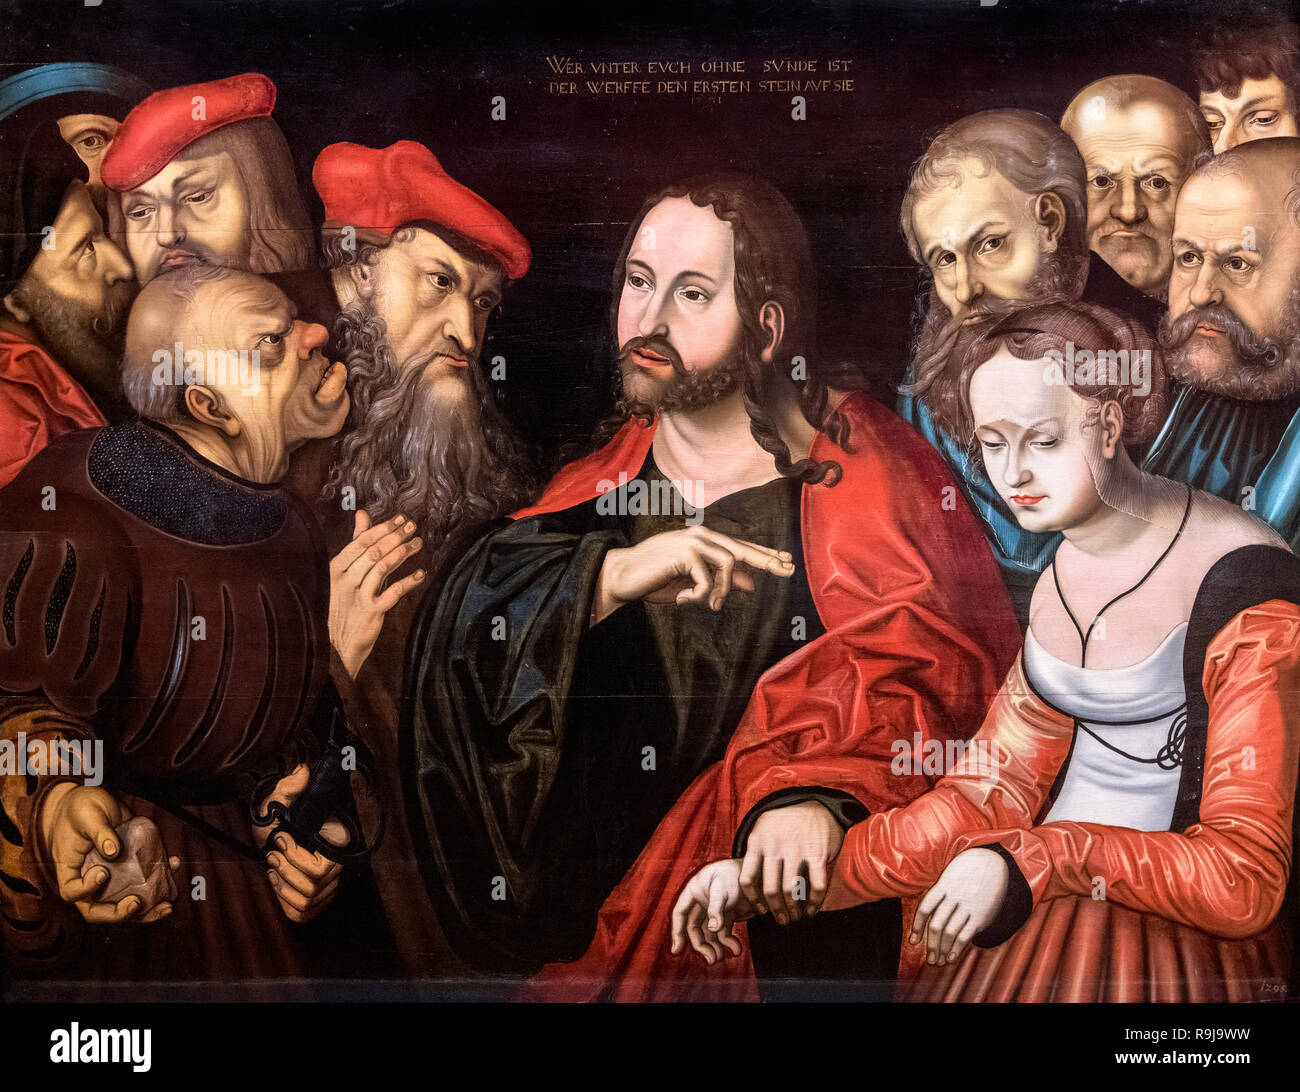 Christ and the Woman Taken in Adultery by follower of Lucas Cranach the Elder (1472-1553), oil on wood, 1531 - Stock Image